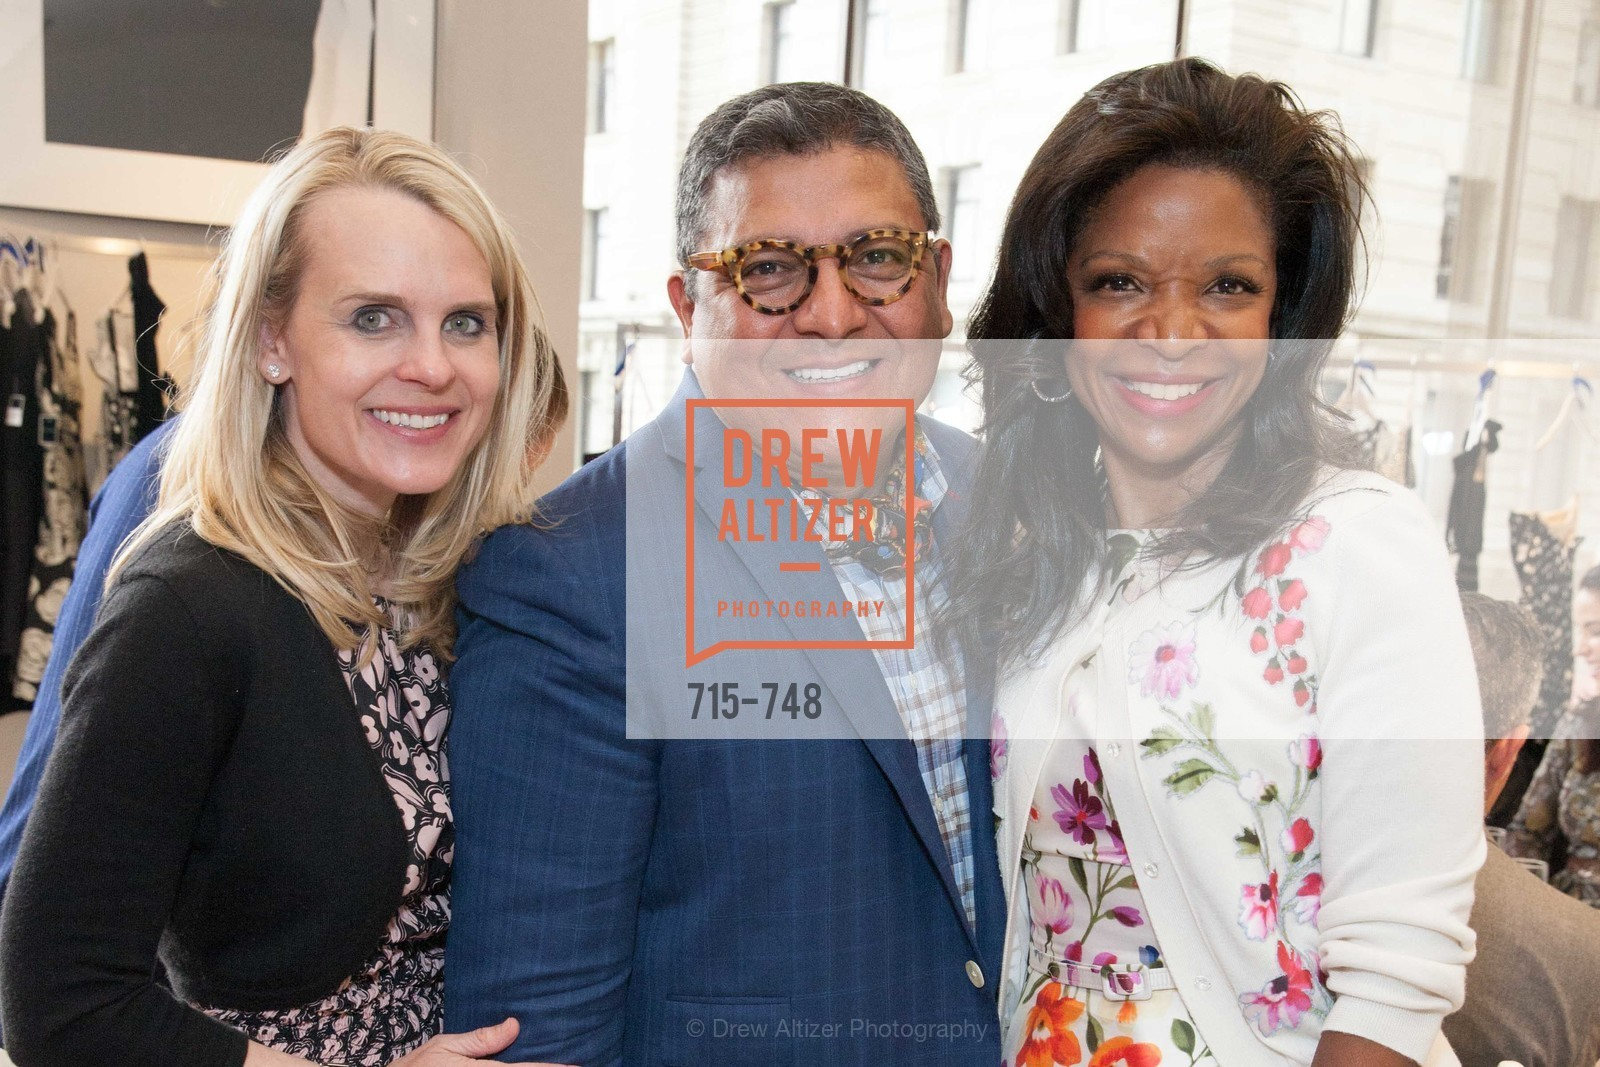 Jane Mudge, Riccardo Benavides, Pamela Joyner, PETER COPPING'S Personal Appearance at SAKS FIFTH AVENUE, US, May 22nd, 2015,Drew Altizer, Drew Altizer Photography, full-service agency, private events, San Francisco photographer, photographer california